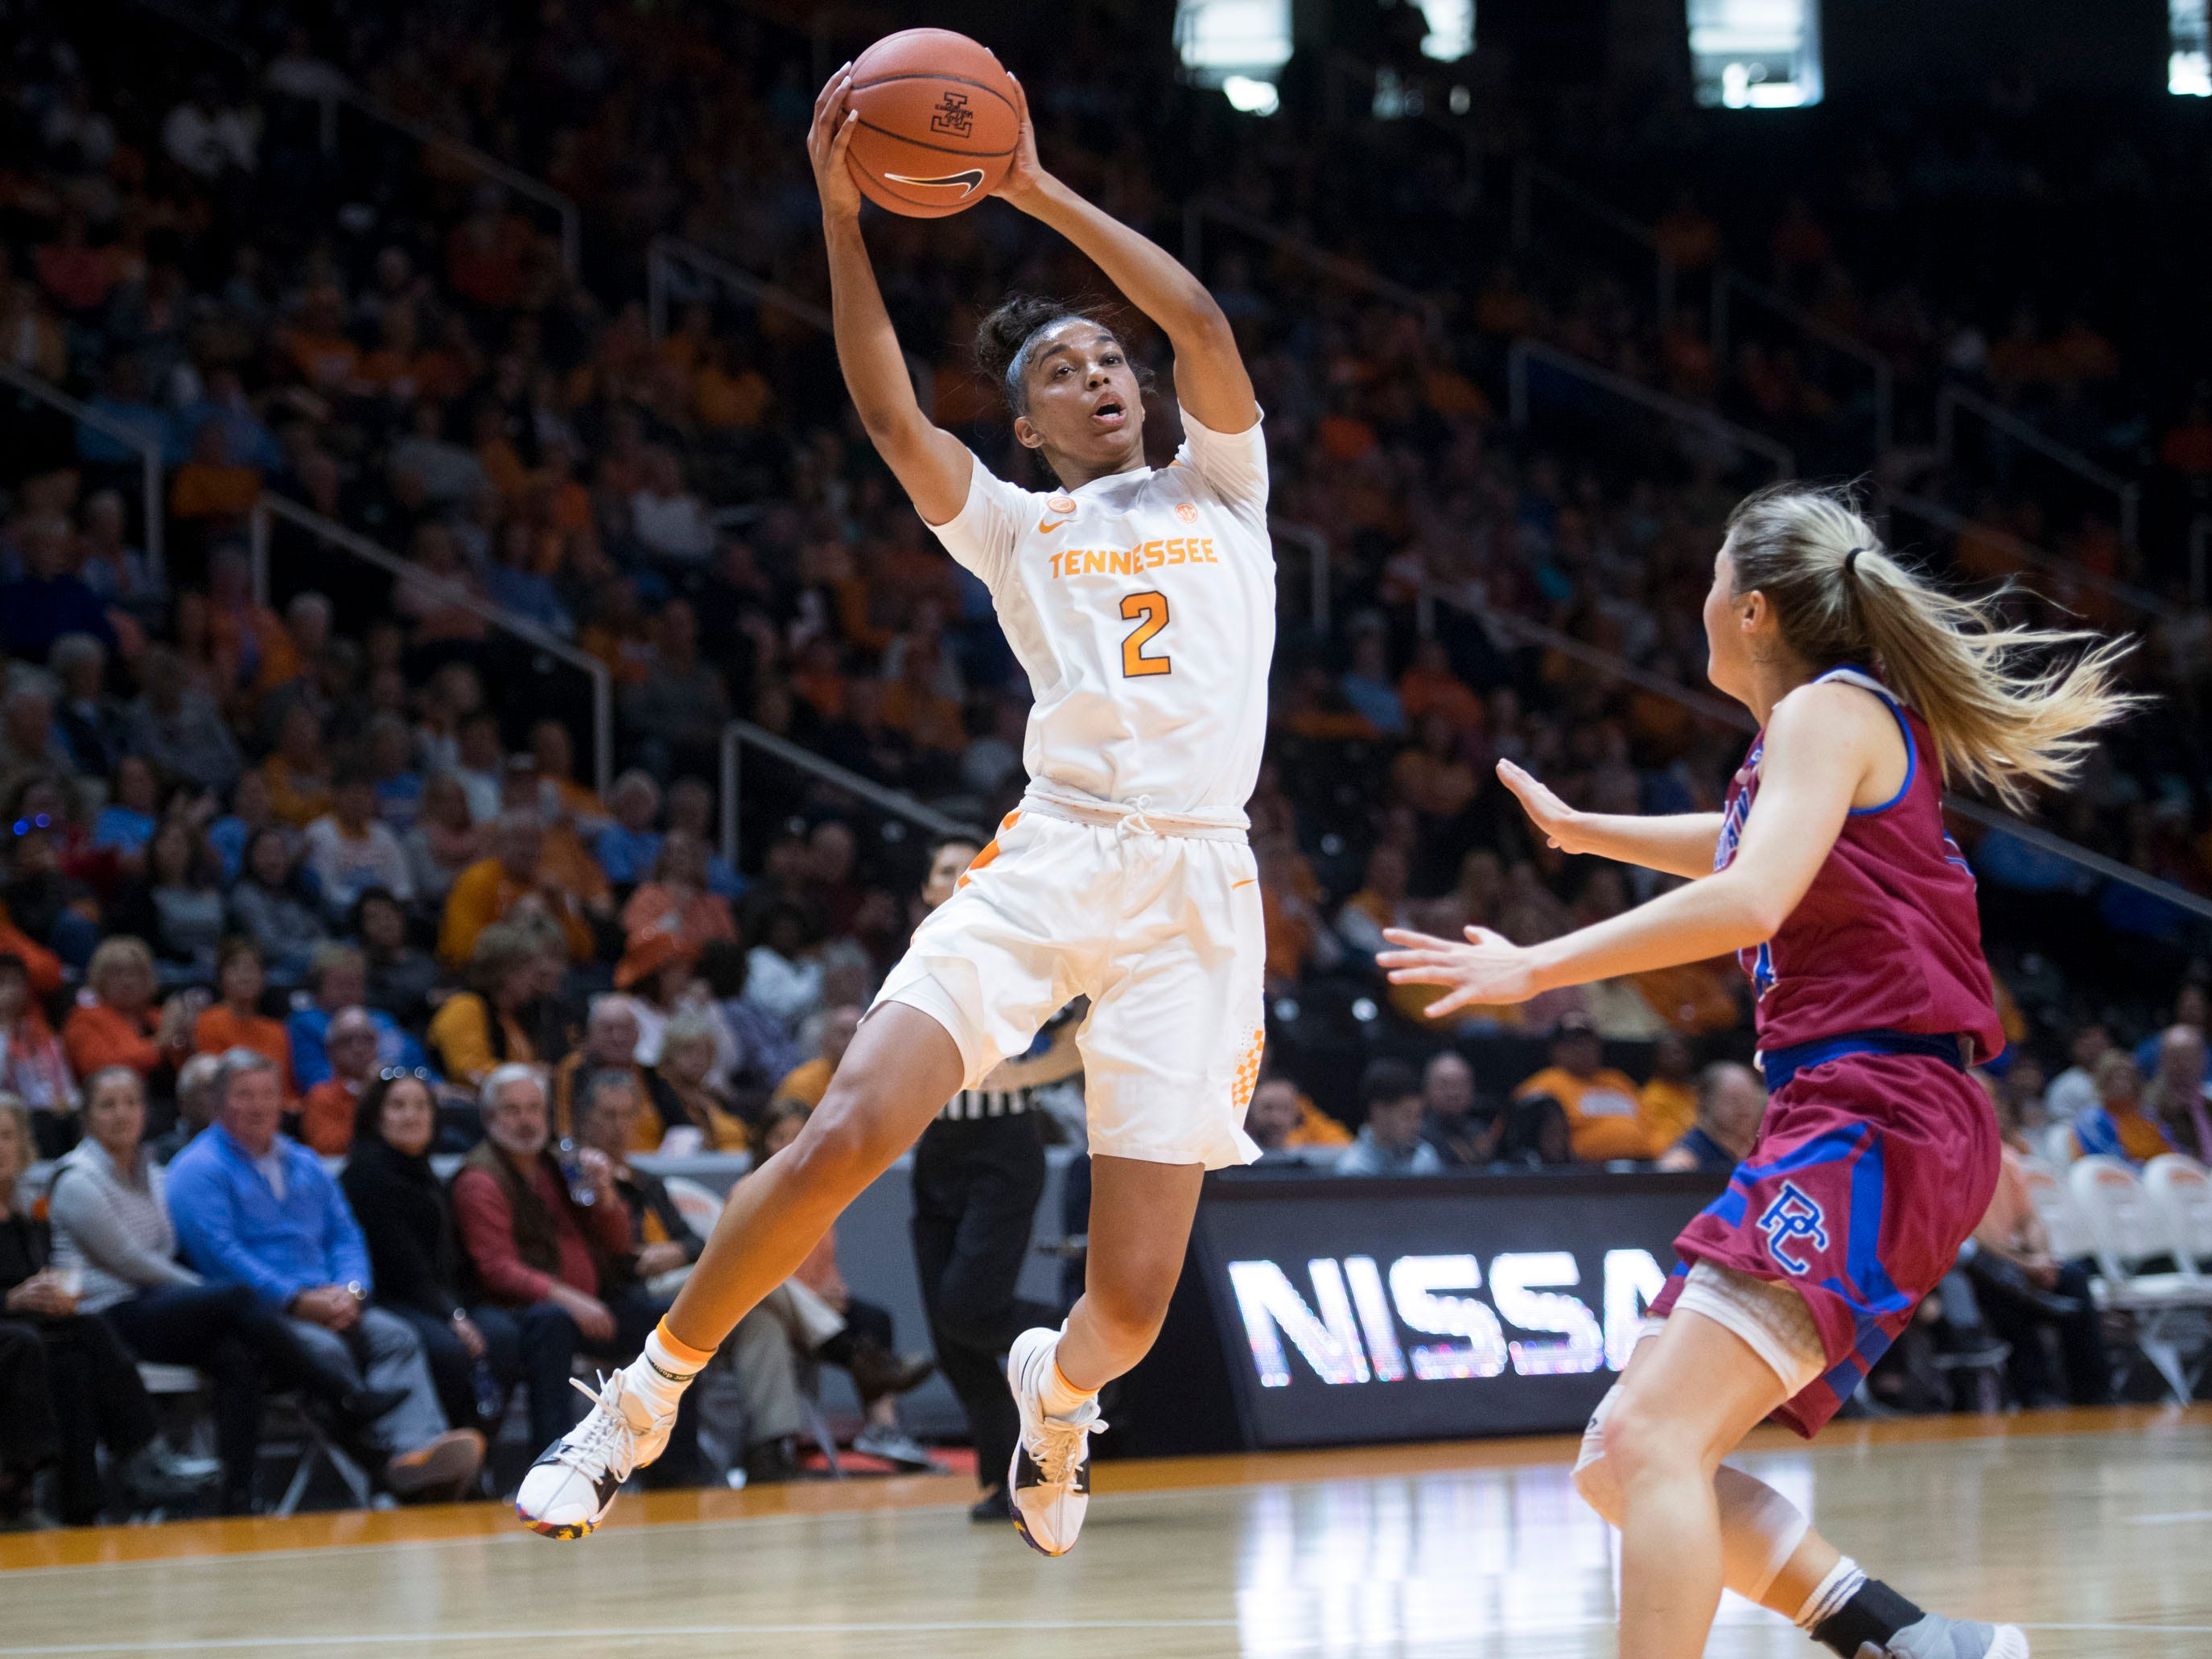 Tennessee's Evina Westbrook (2) pulls down a pass while defended by Presbyterian's Kacie Hall (11) on Sunday, November 11, 2018.